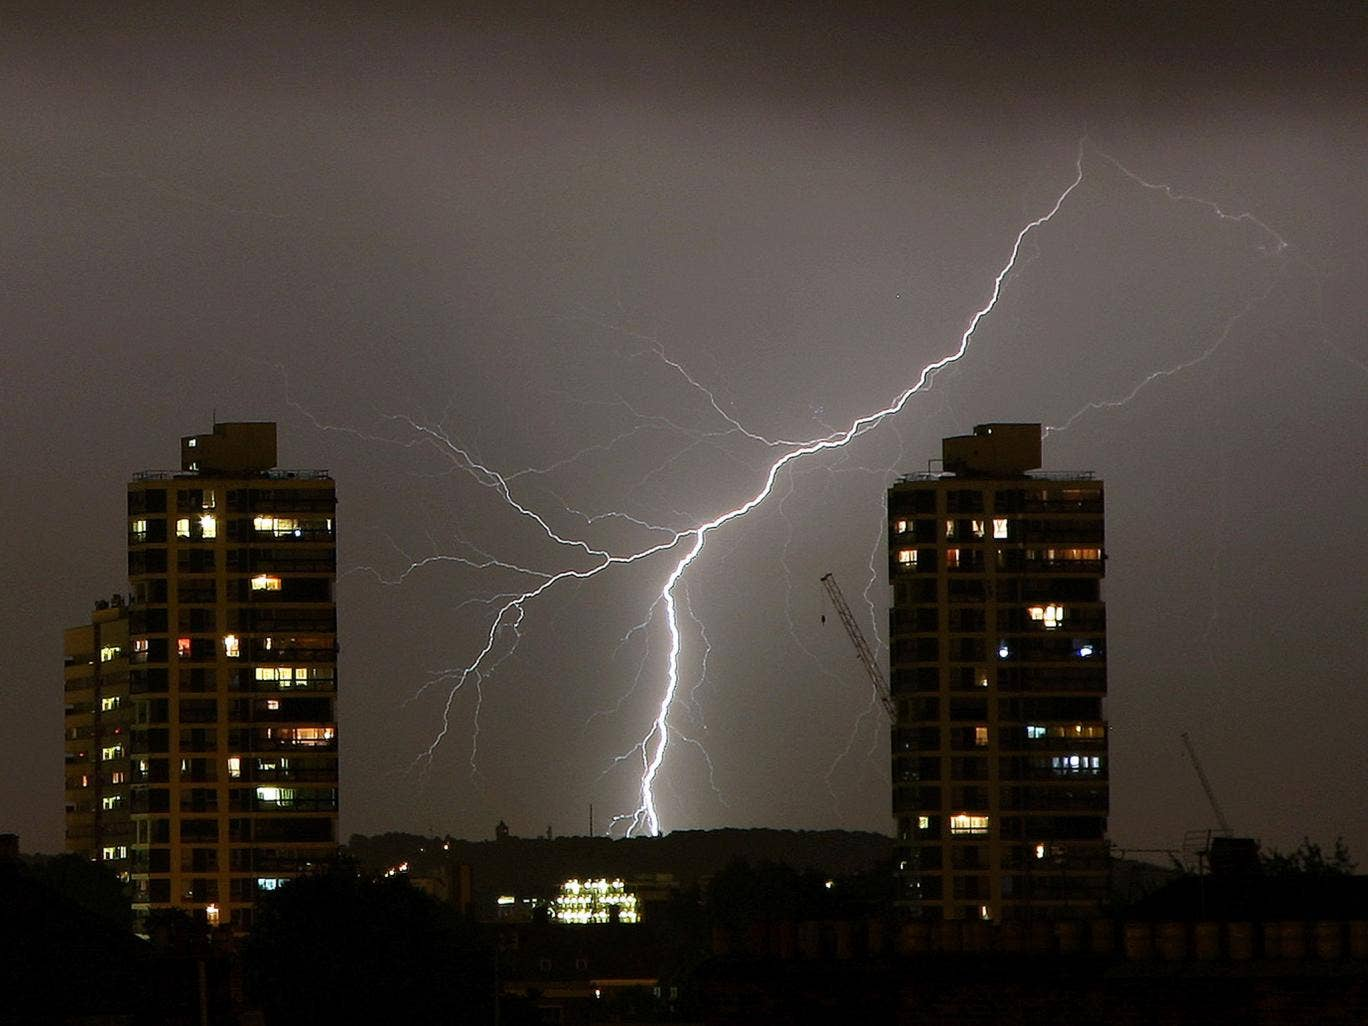 Lightning flashes in the night sky over South London